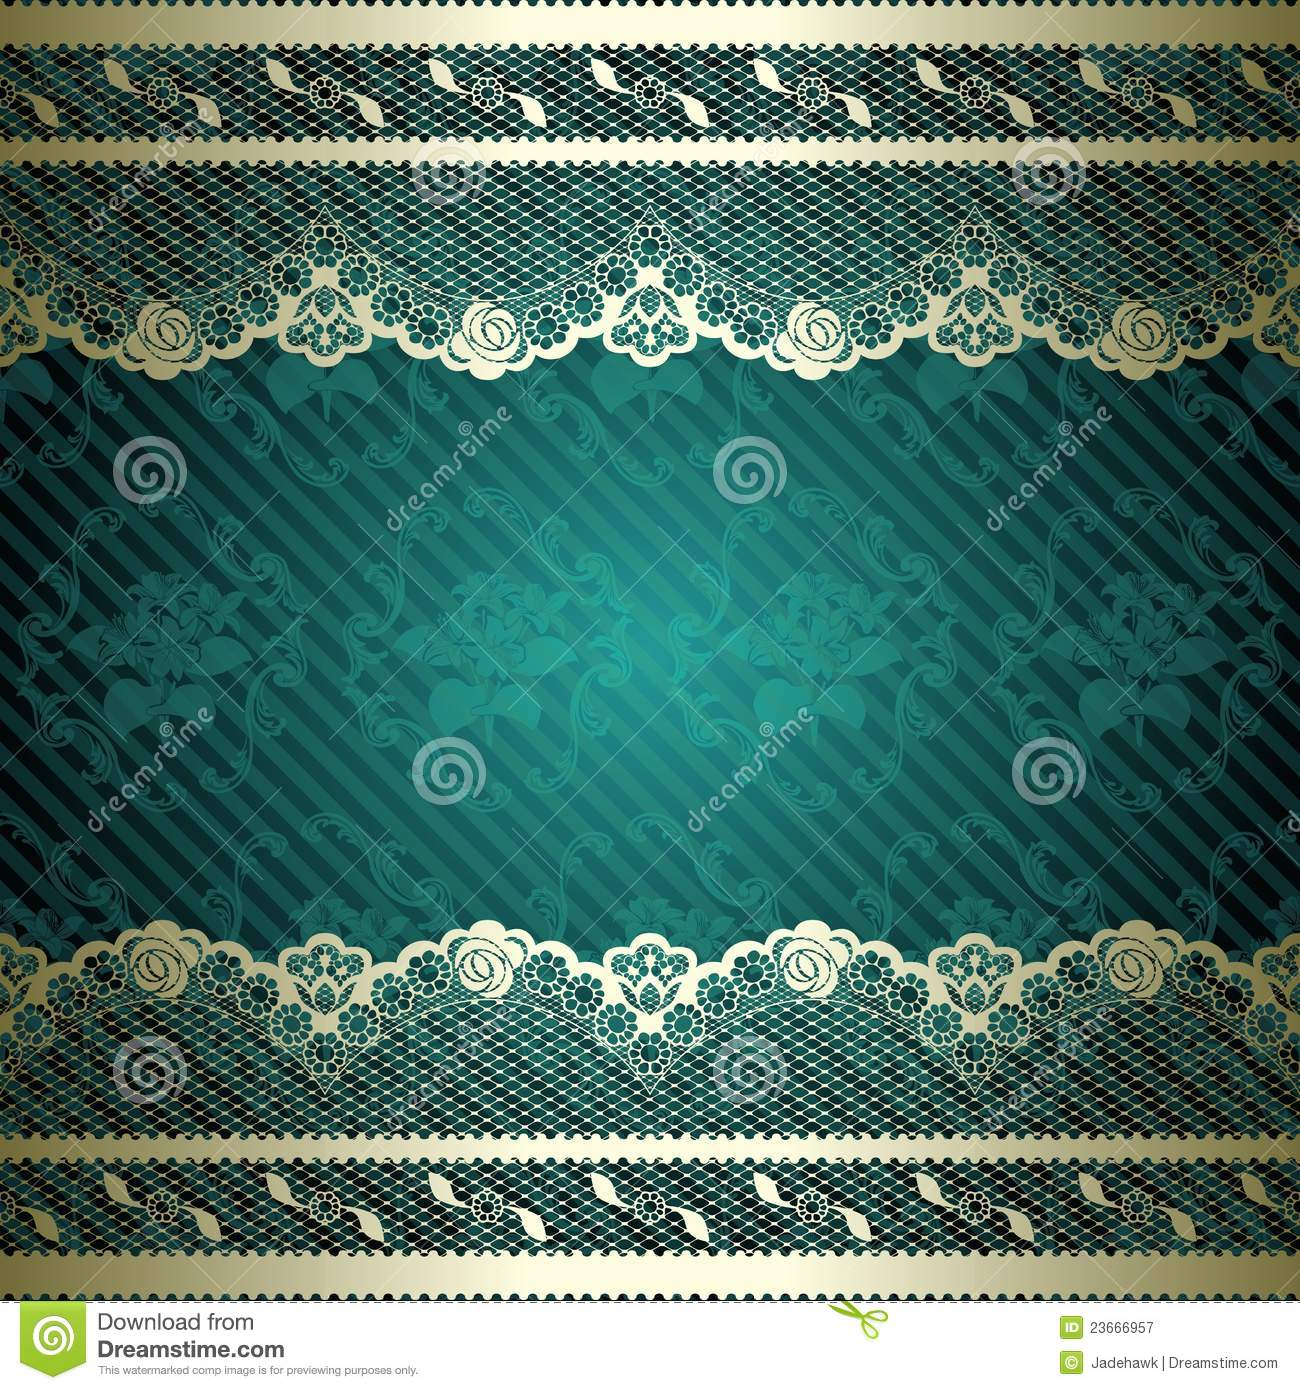 Lacy Design With Dark Green Background Royalty Free Stock